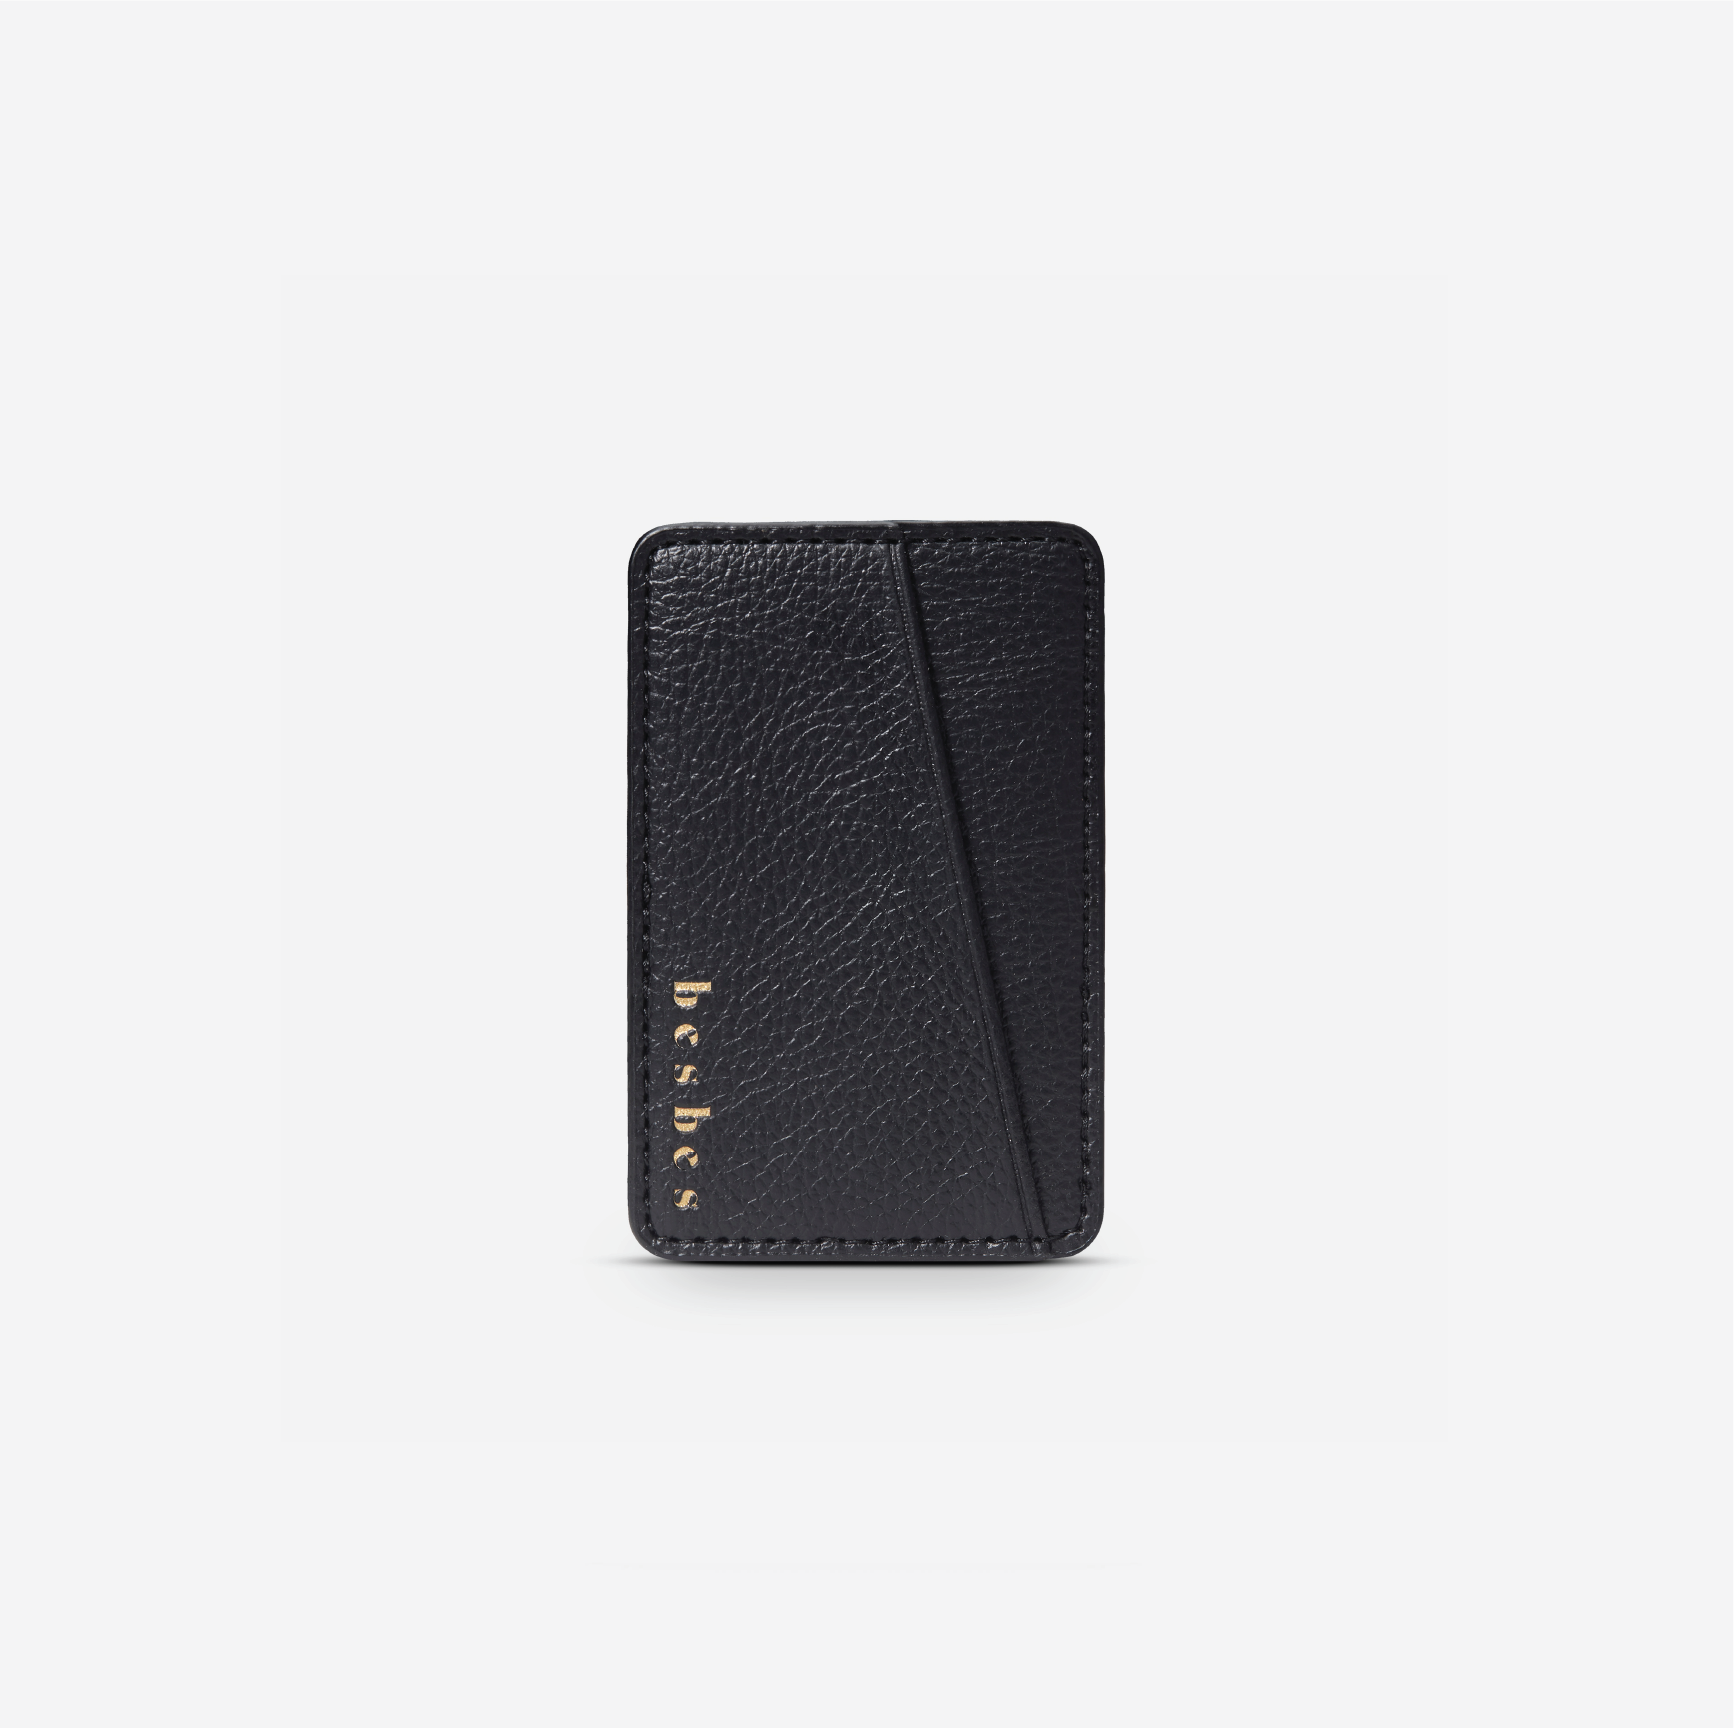 Ebony Black Vegan Leather Pocket